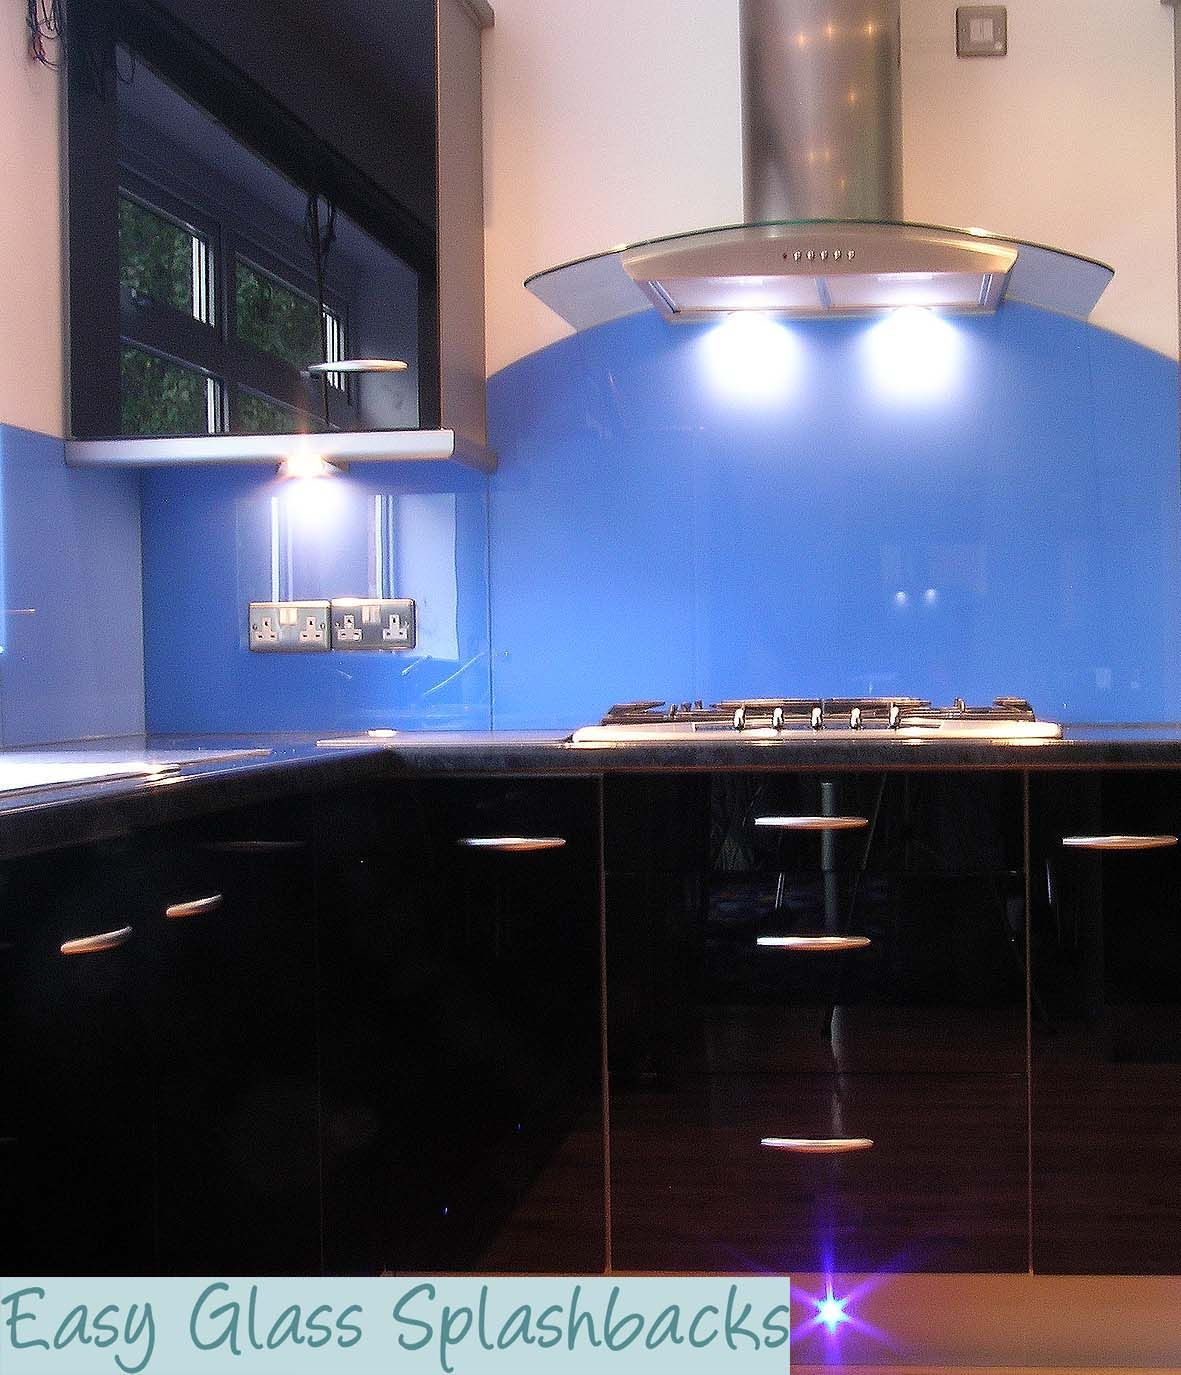 Royal Blue Coloured Glass Splashback In A White Kitchen With Worktop Visit Easyglasssplashbackscouk To Discover More